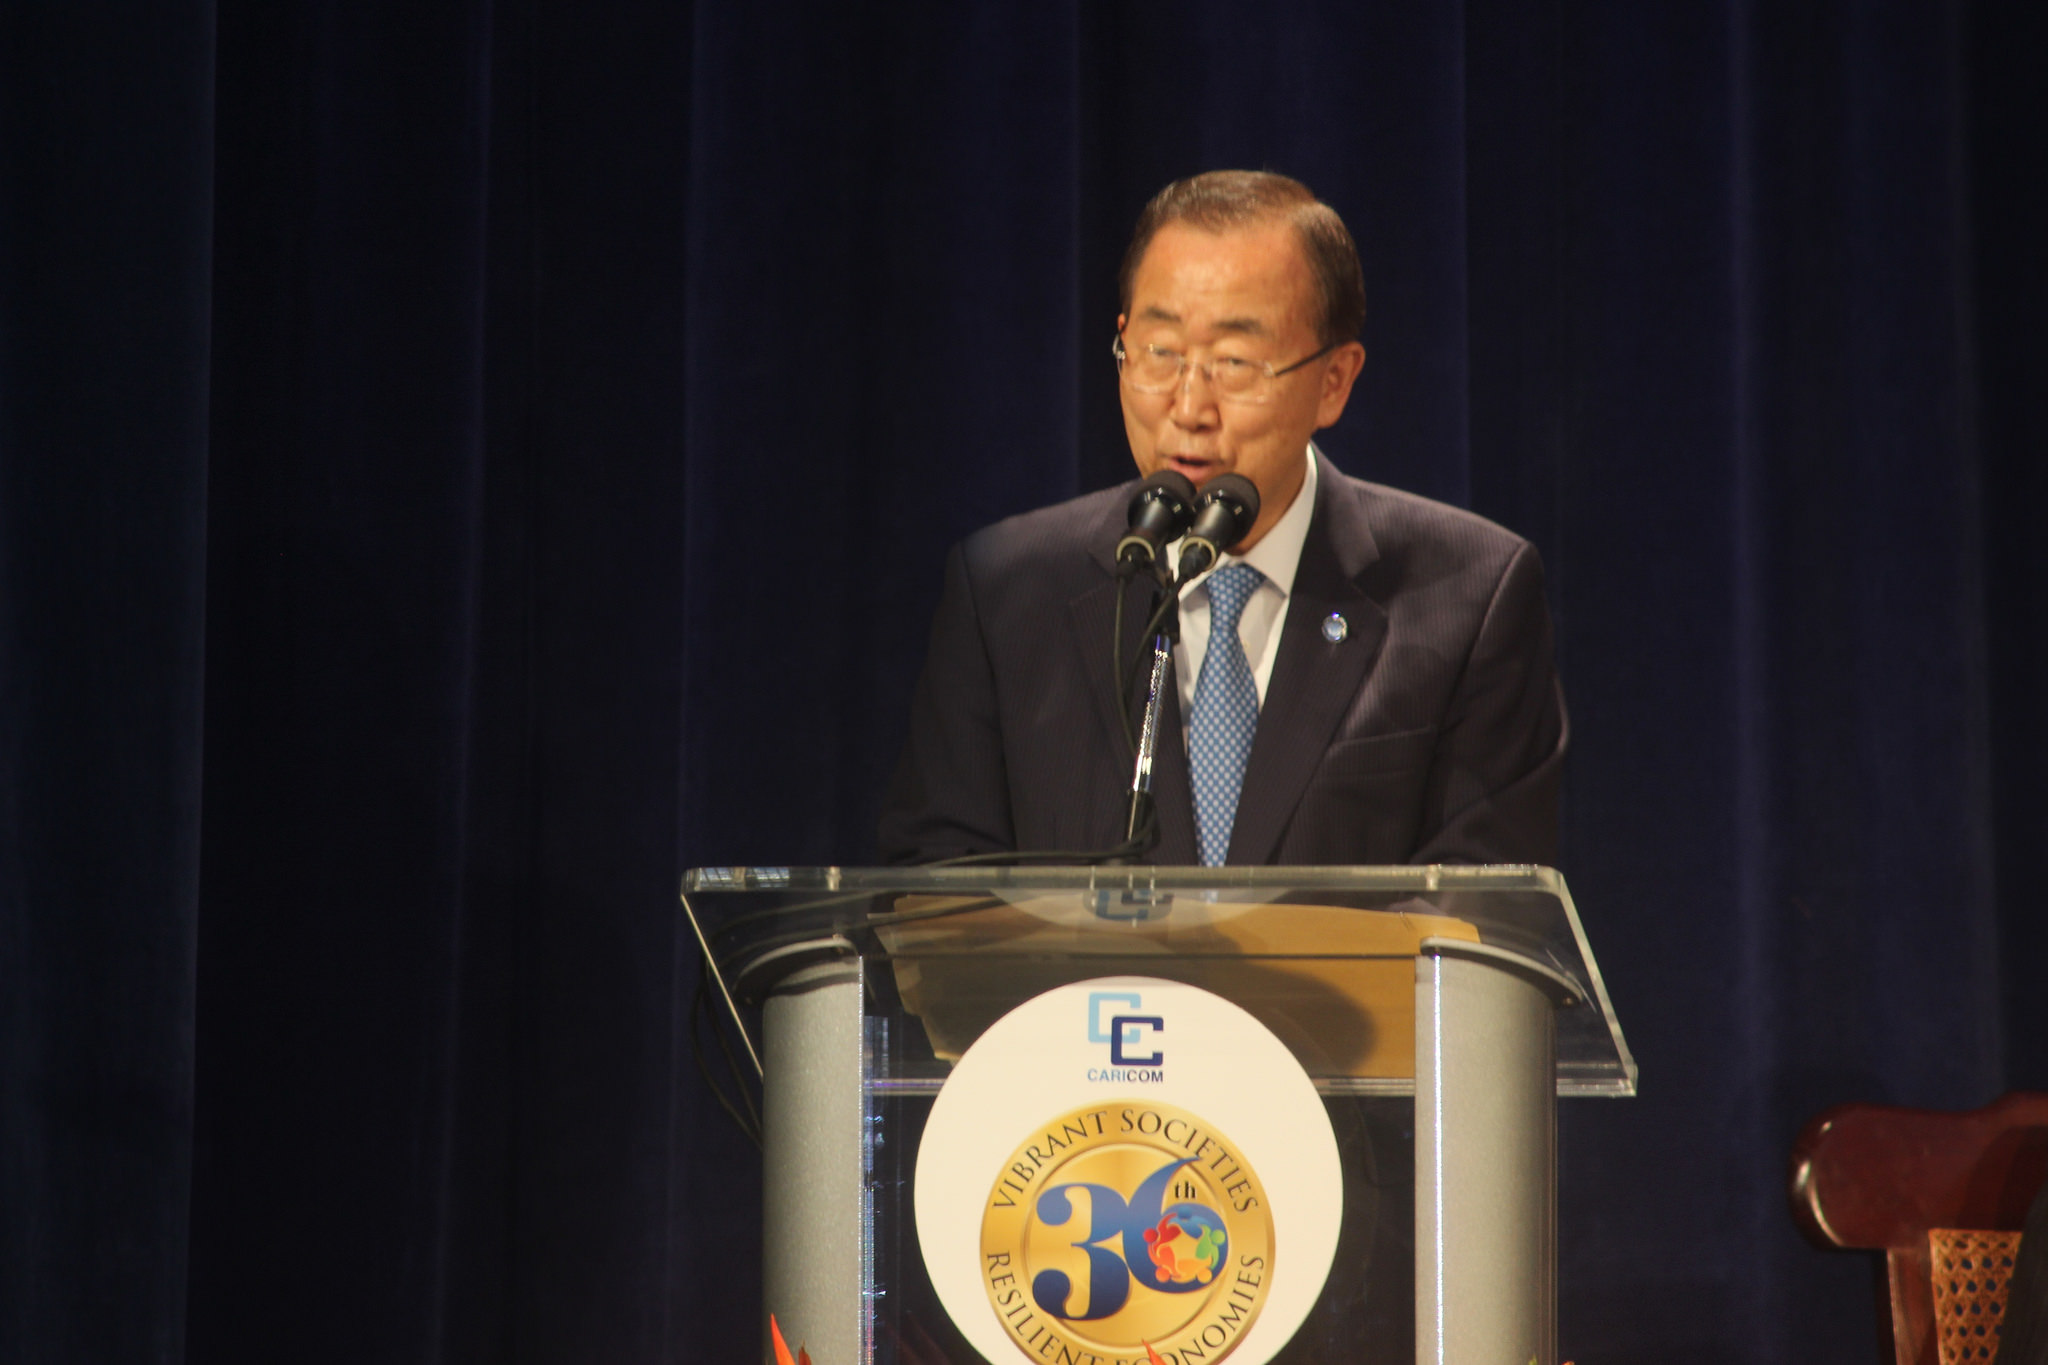 Photo of UN S-G remarks at end violence event Barbados